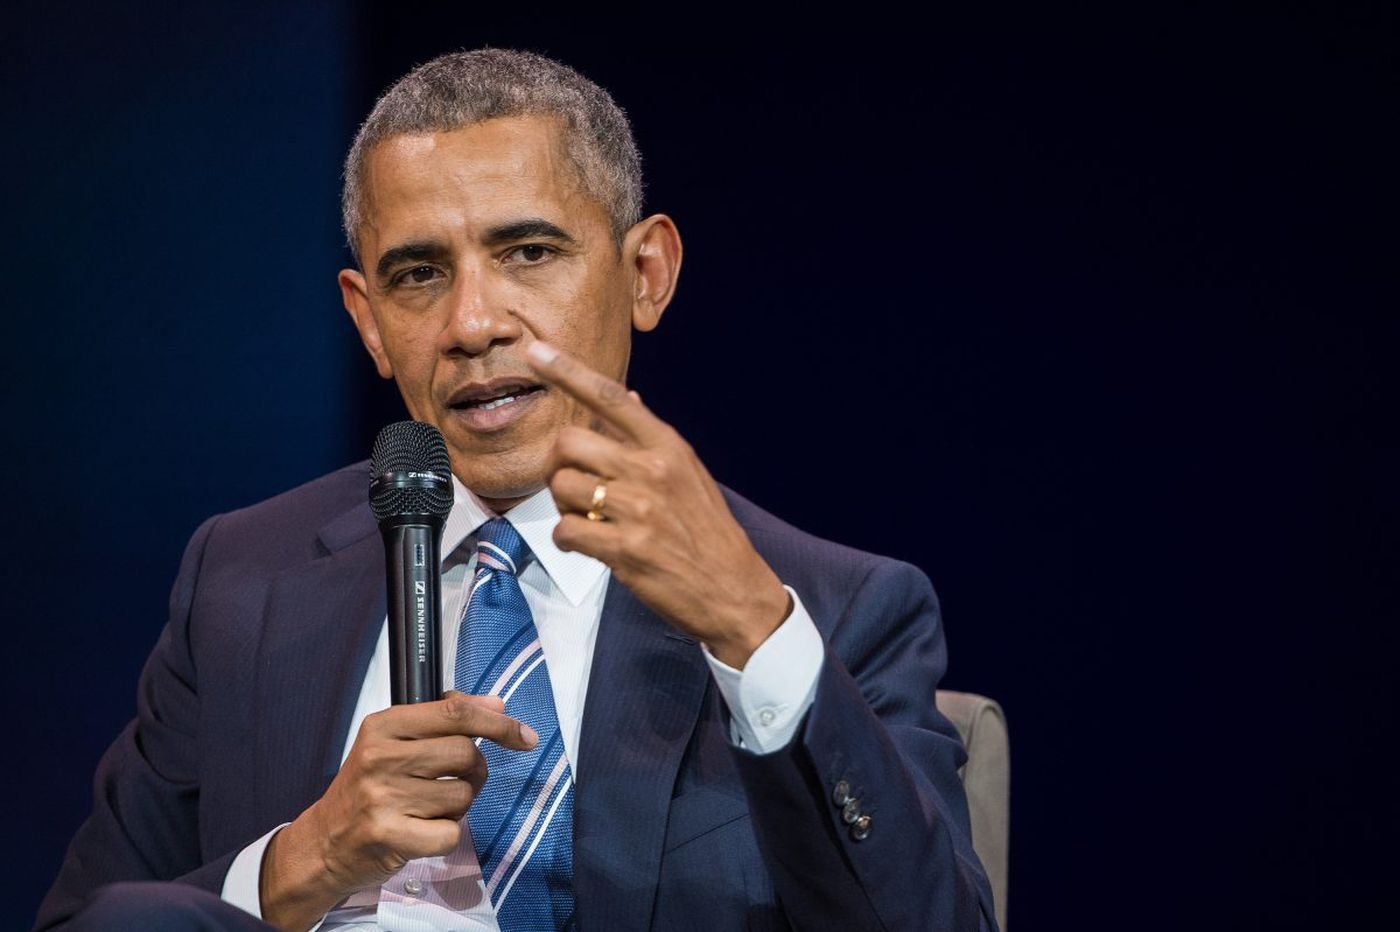 Obama will be the first guest on Letterman's new Netflix talk show